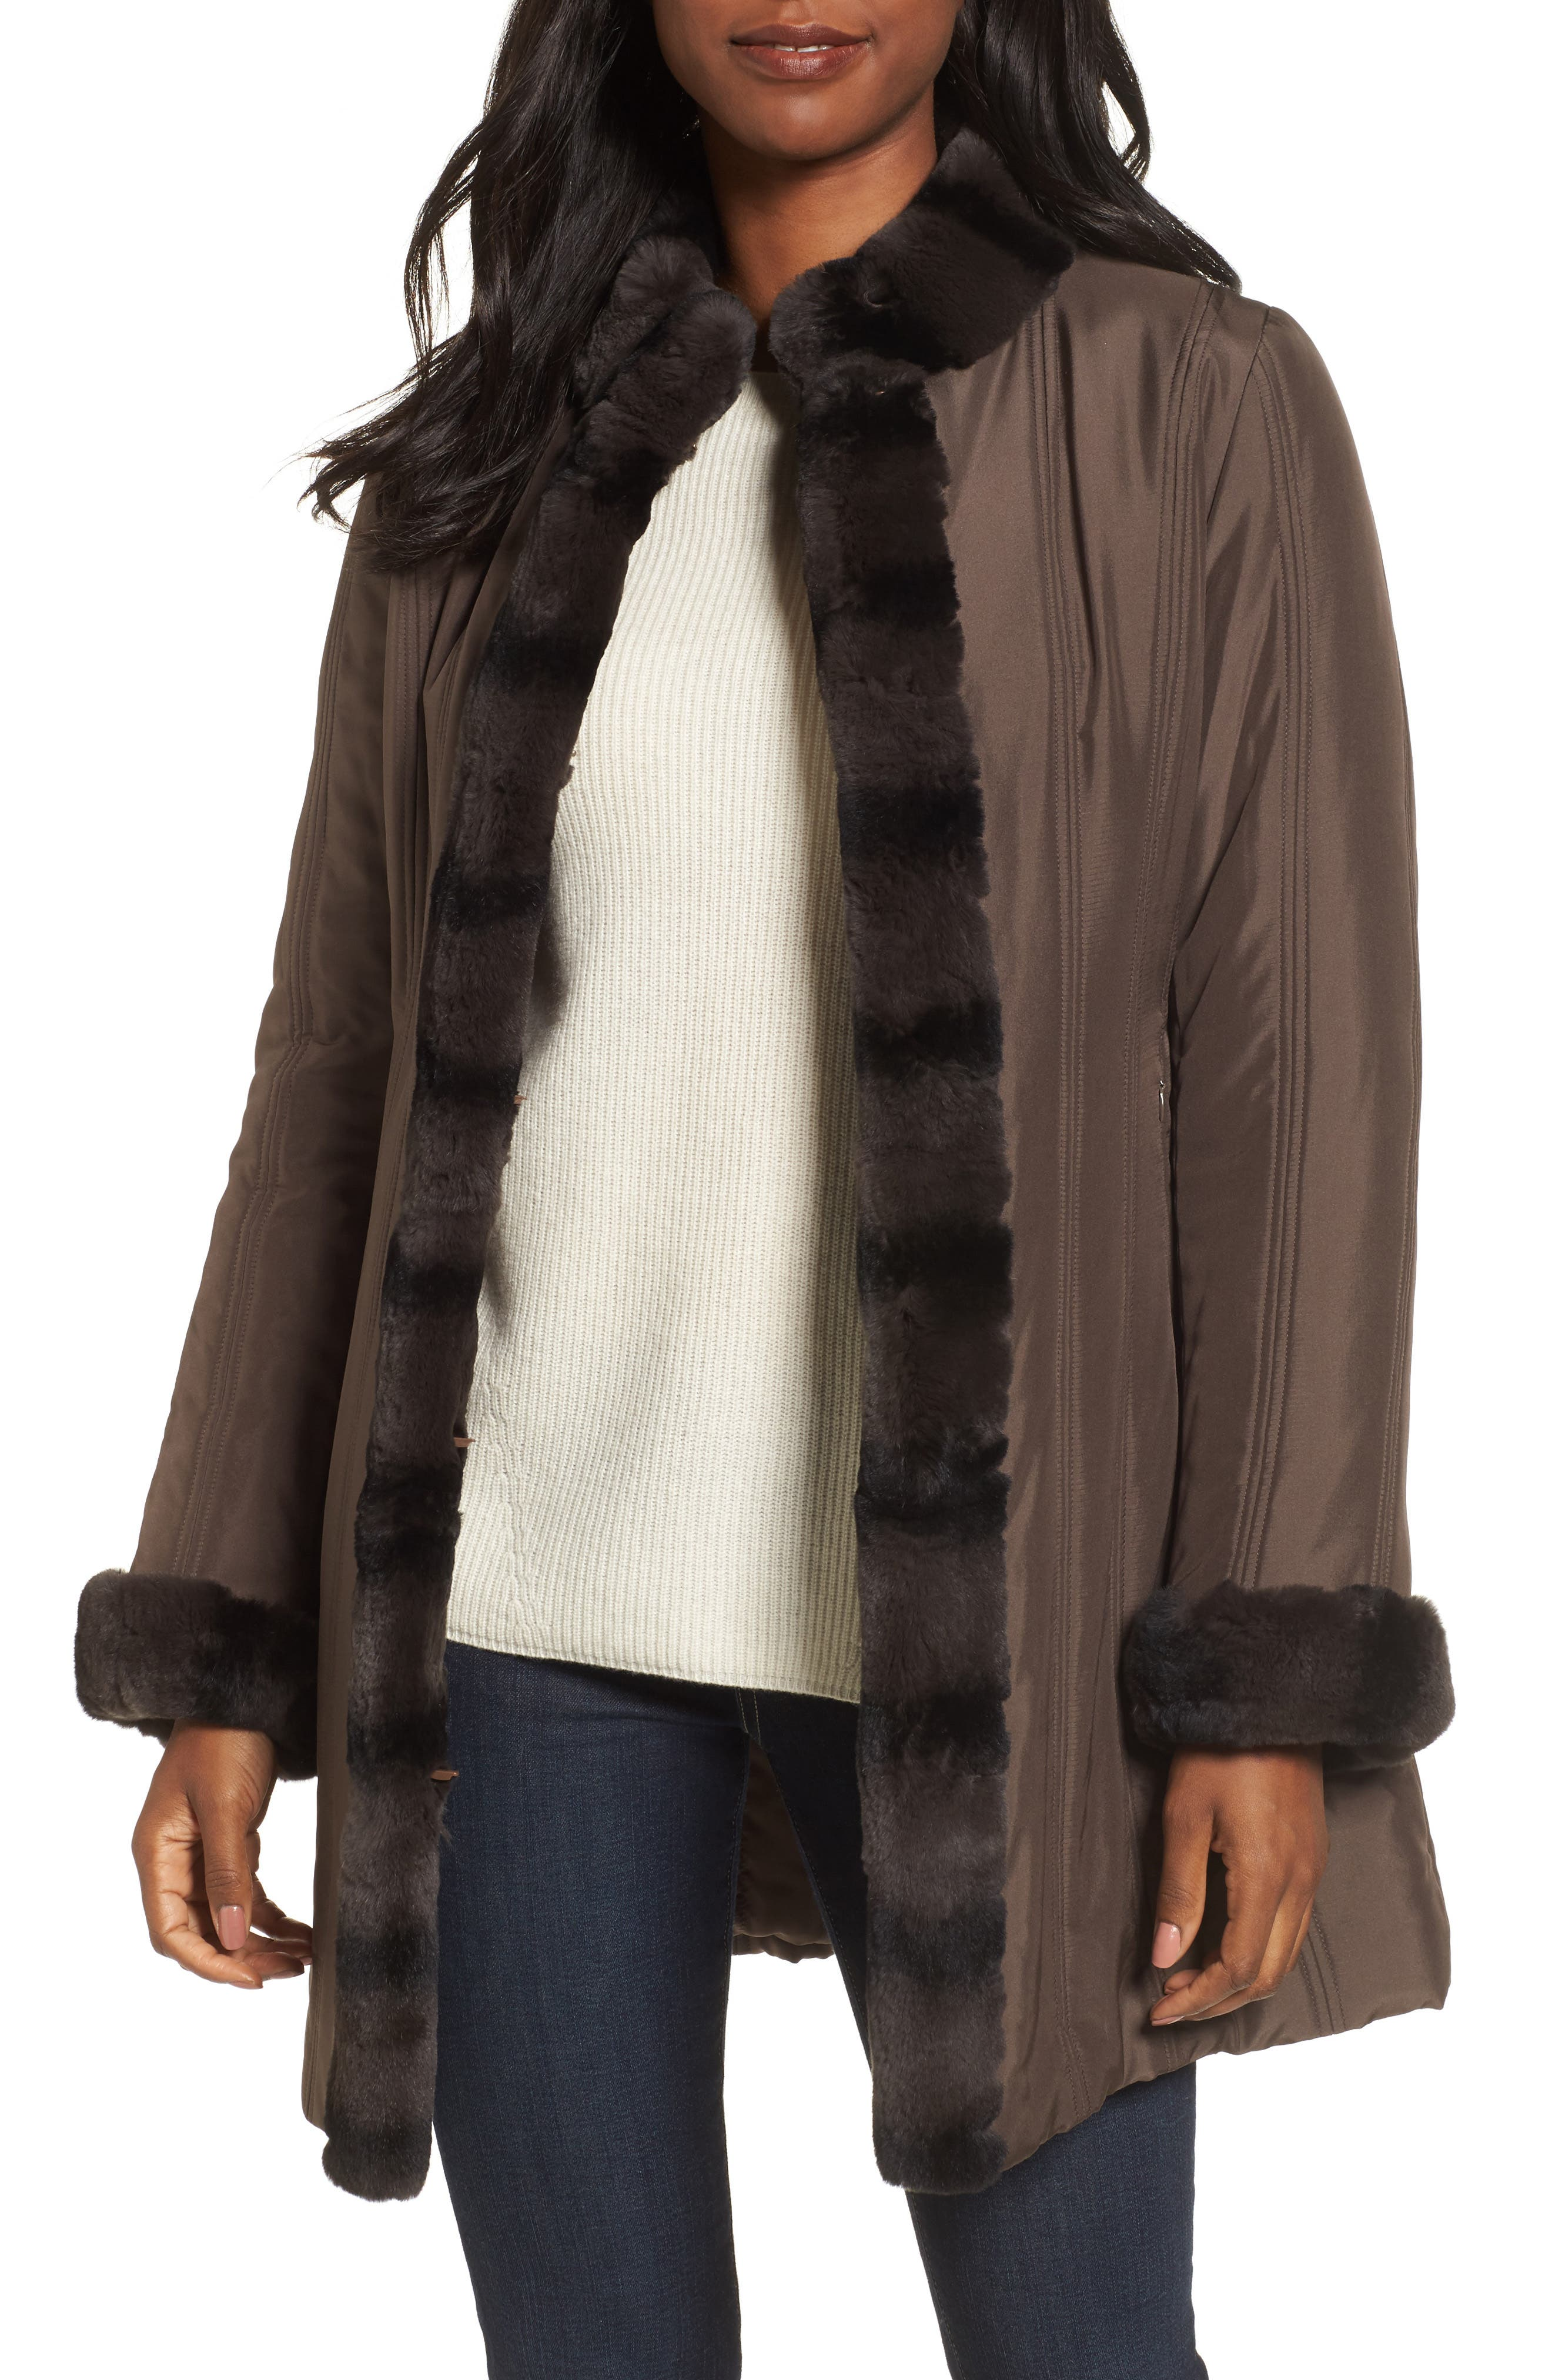 George Simonton Couture Packable Silk Coat with Genuine Rabbit Fur Trim